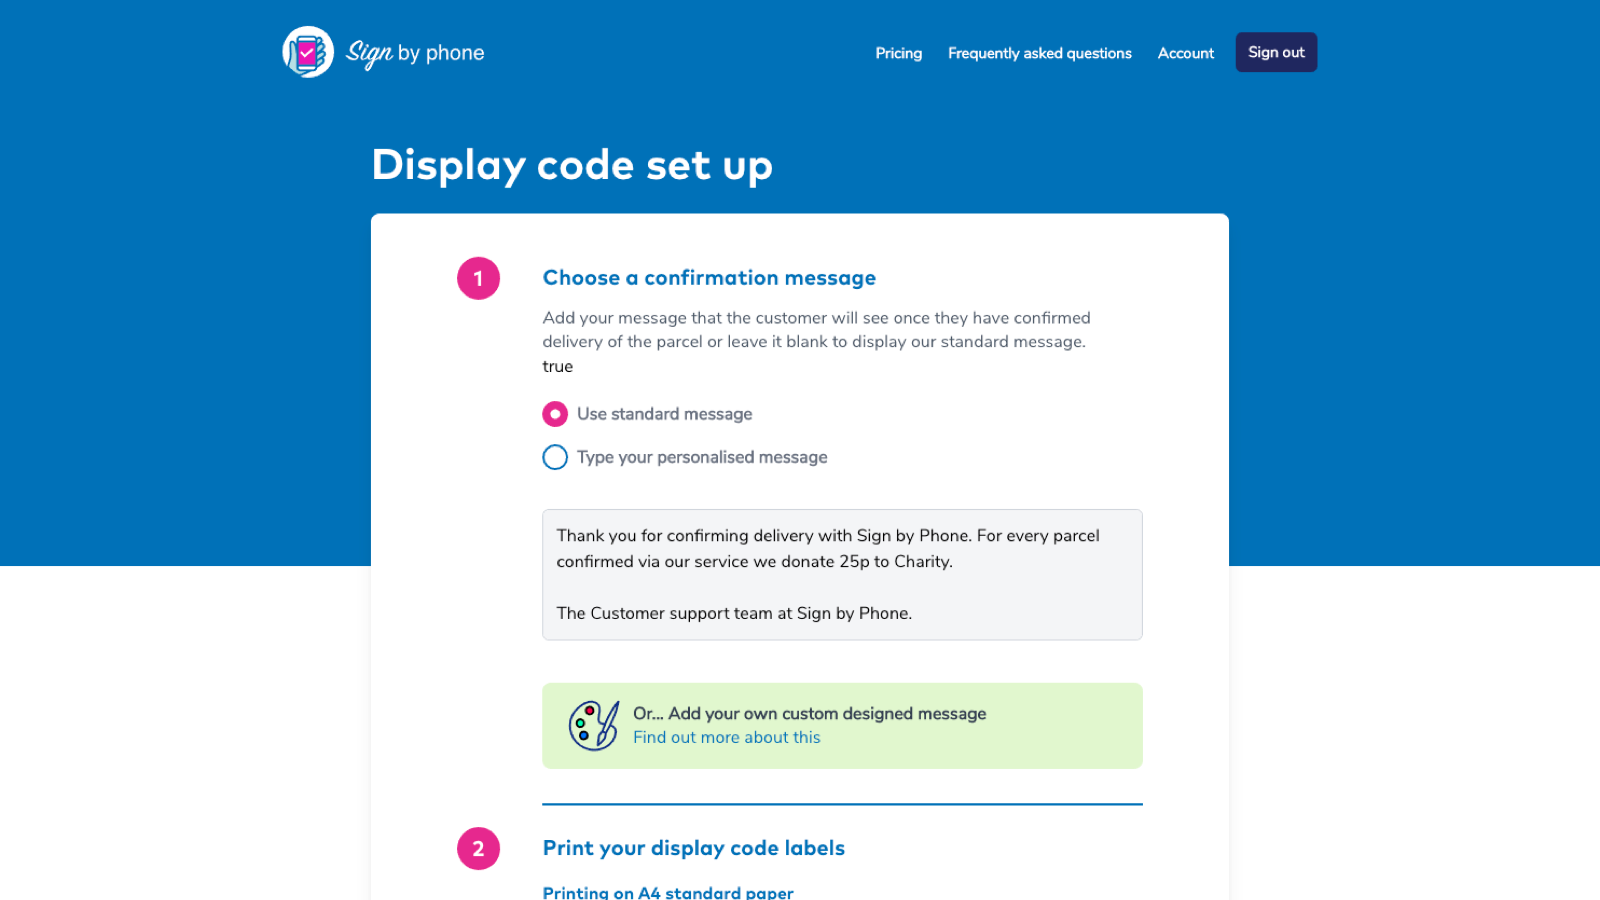 Create a personalised message or offer for your customer